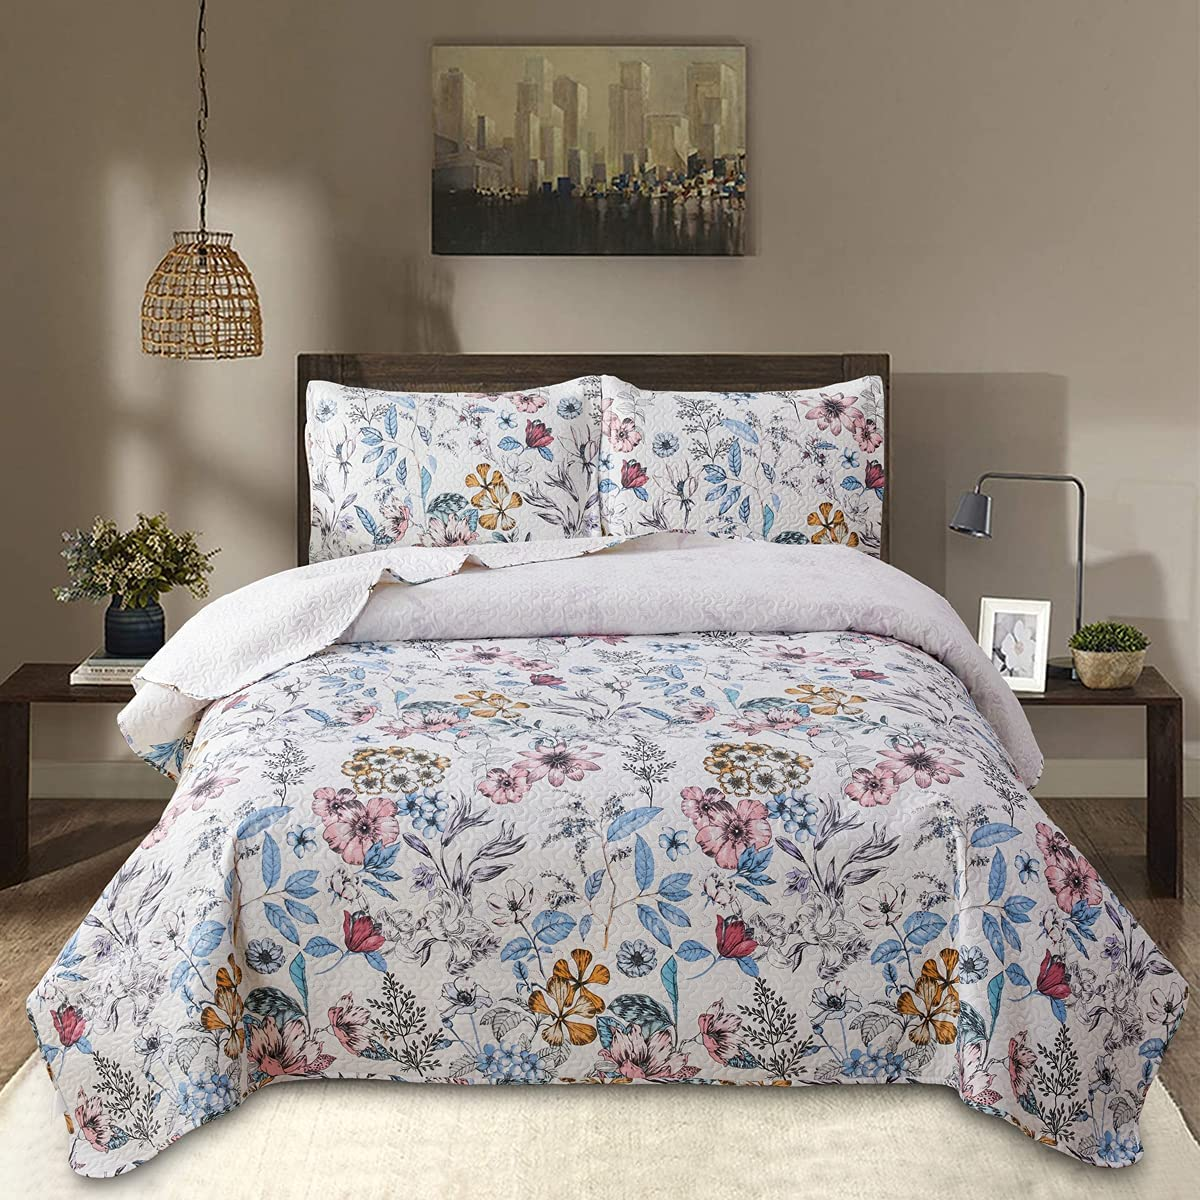 3 Piece Quilt Bedding Floral Bed Set スーパーセール for 国内送料無料 Queen Reversible